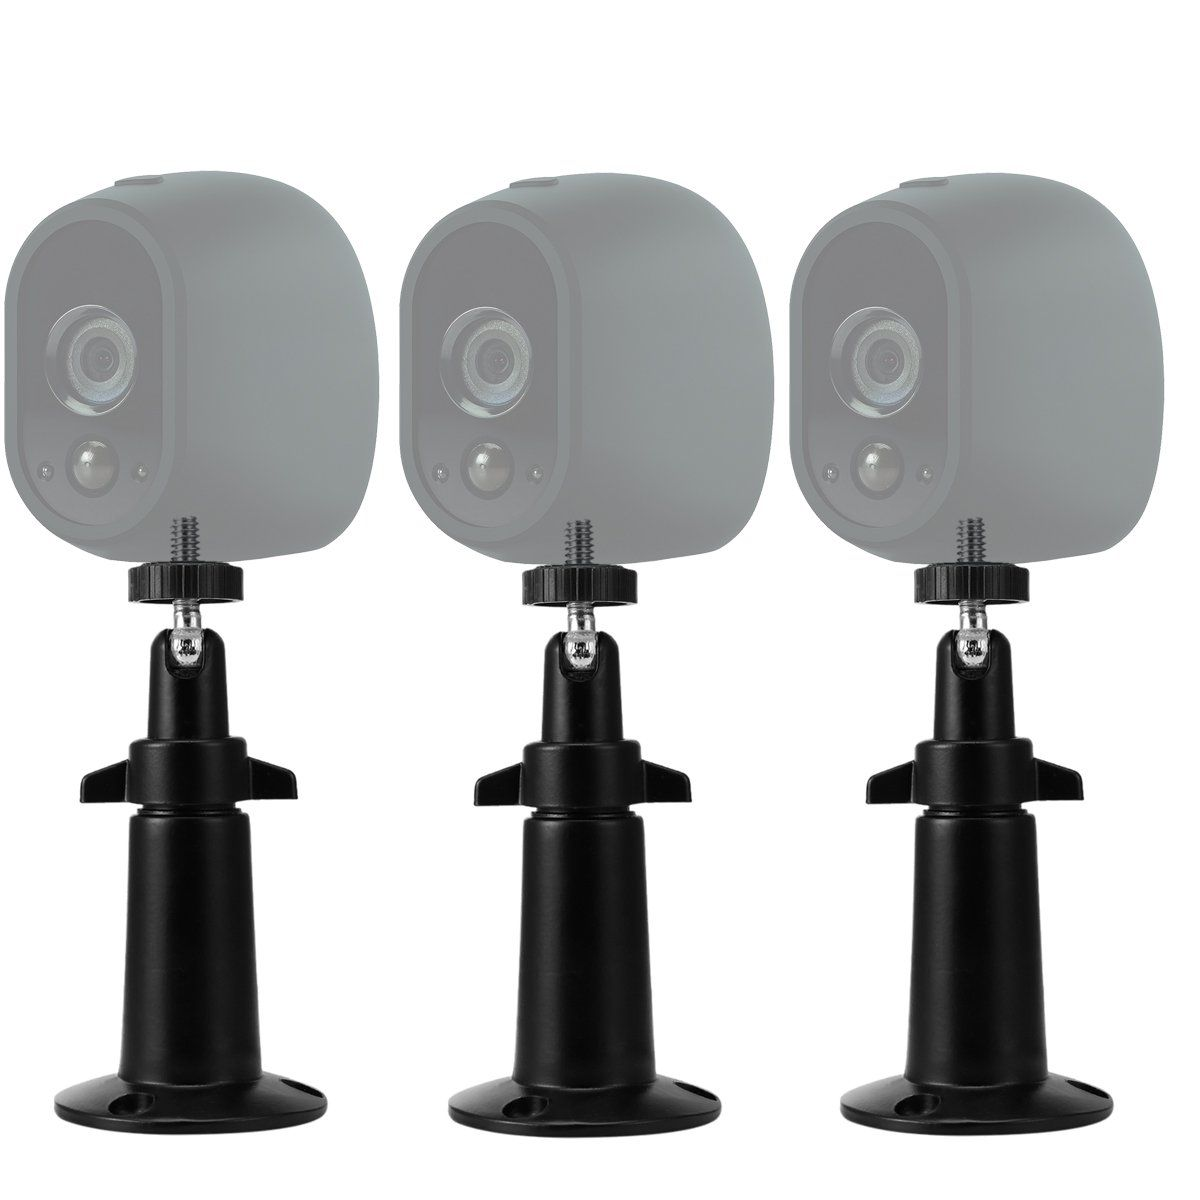 Arlo Security Wall Mount Lanmu Wall Mount For Netgear Arlo And Arlo Pro Wire Free Cameras Pack Of 3 Black Cameras For Sale Surveillance Cameras Camera